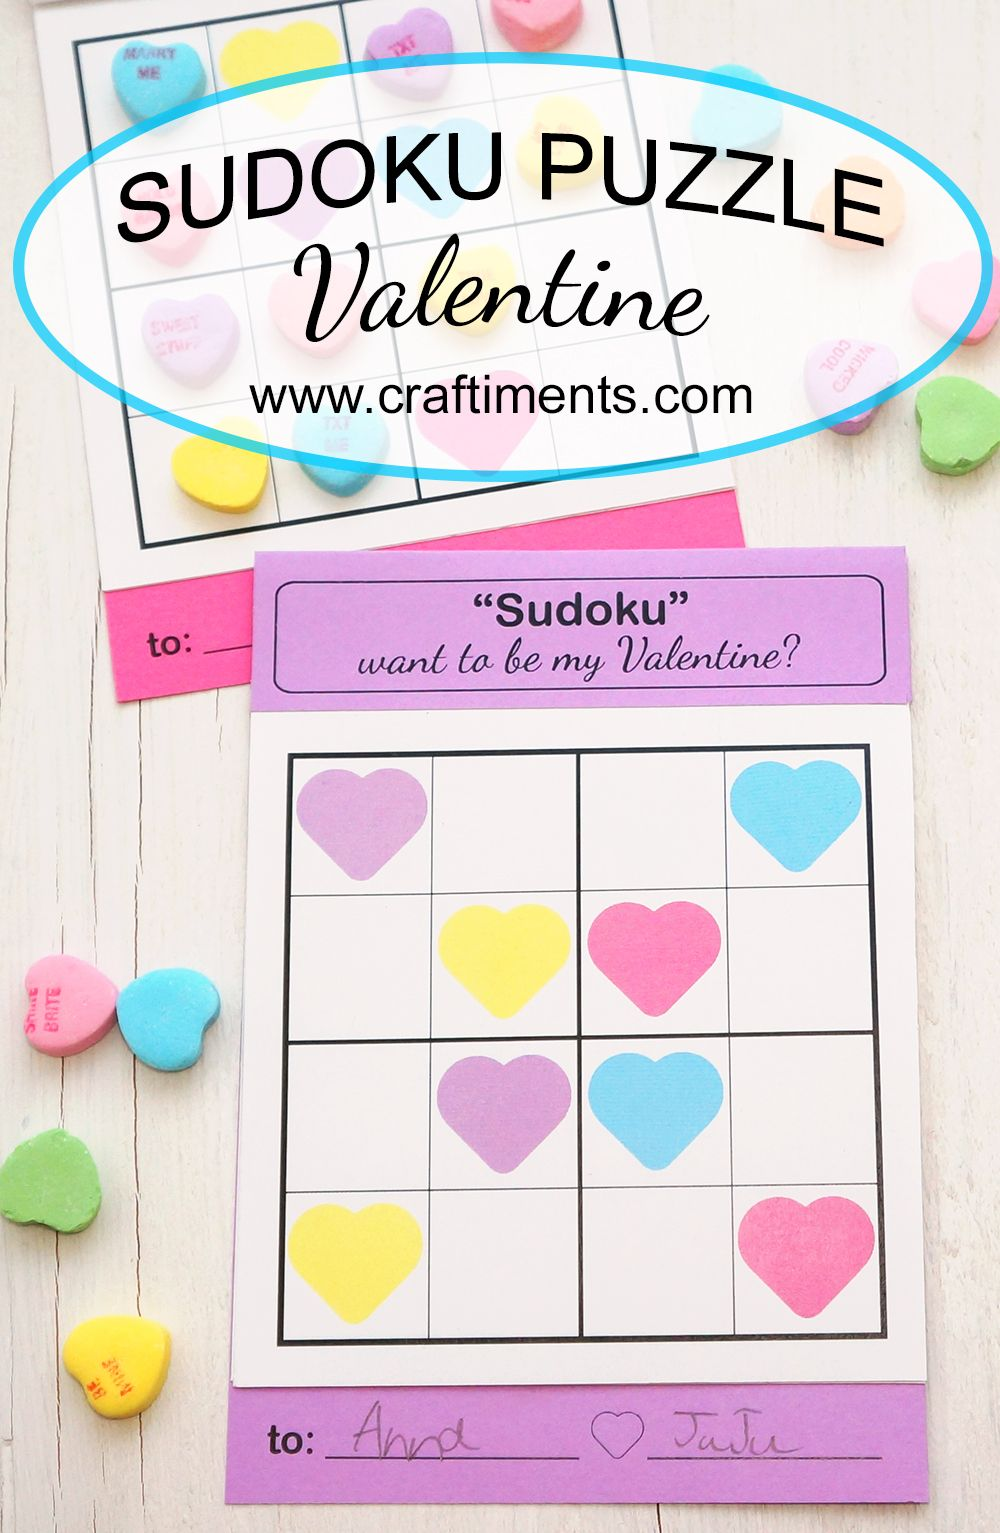 sudoku instructions for kids